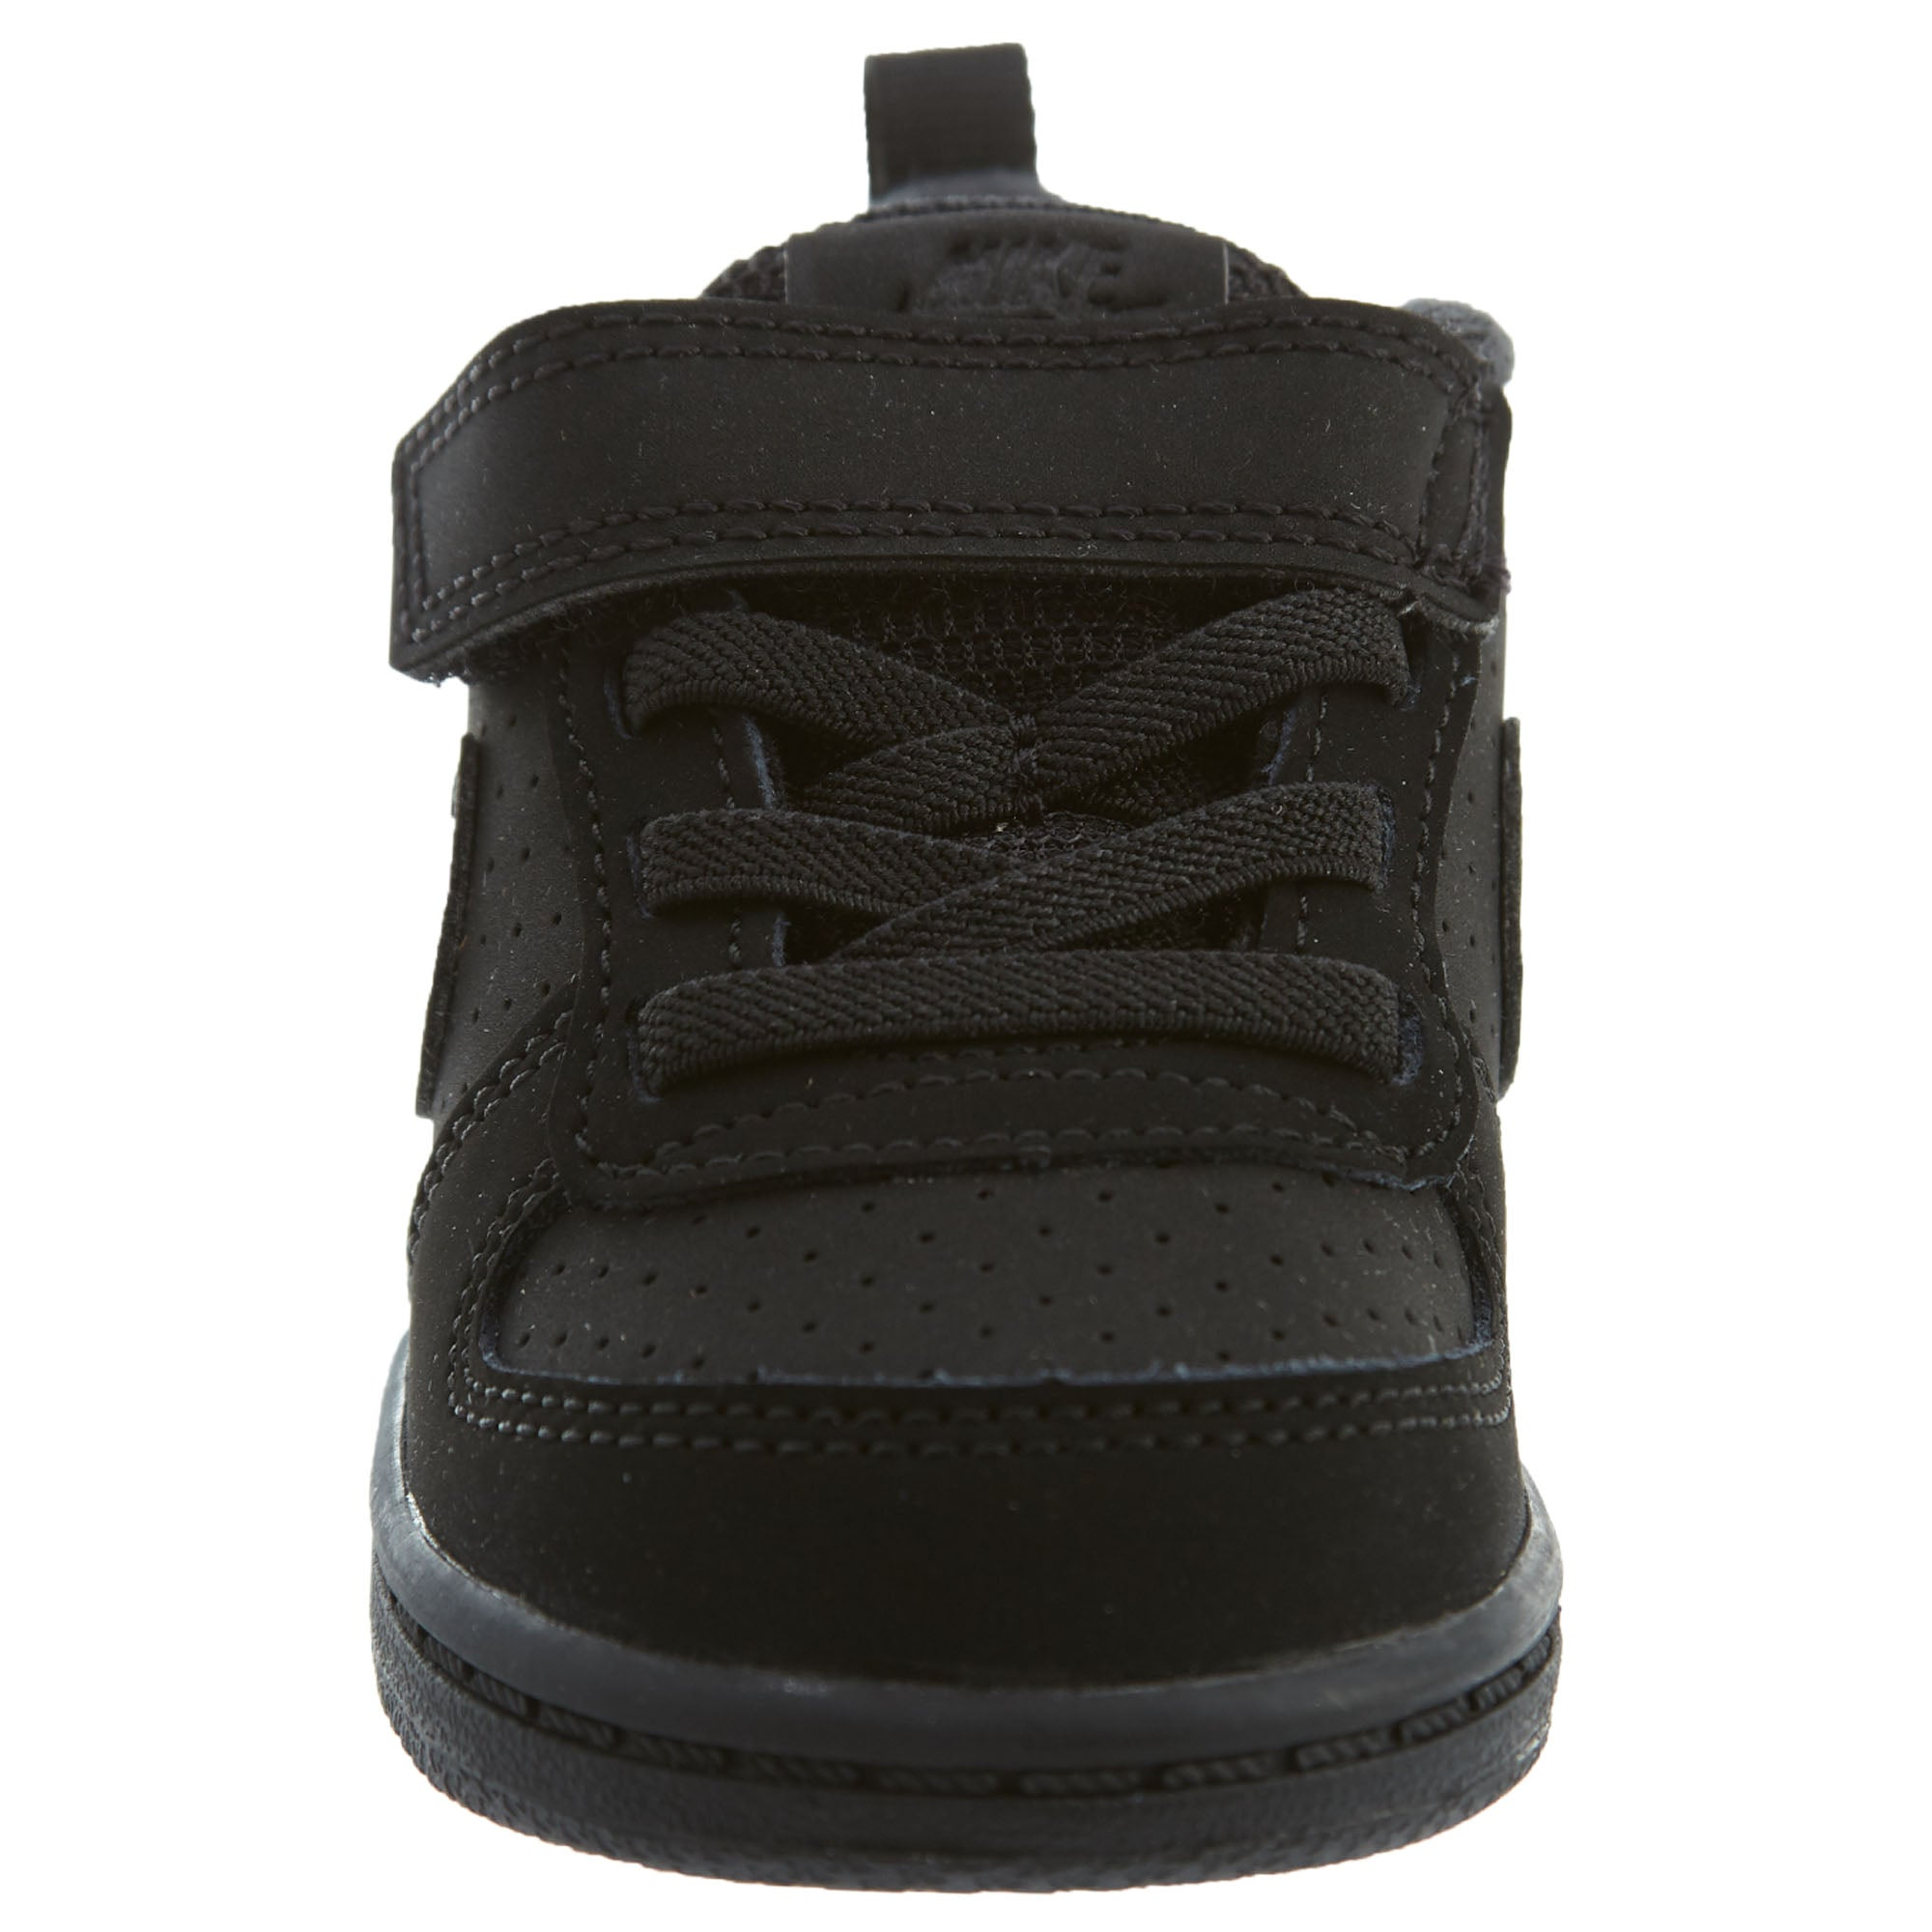 3025c15aea Nike Court Borough Low Toddlers Style : 870029-001. NIKE / Baby & Toddler  Shoes